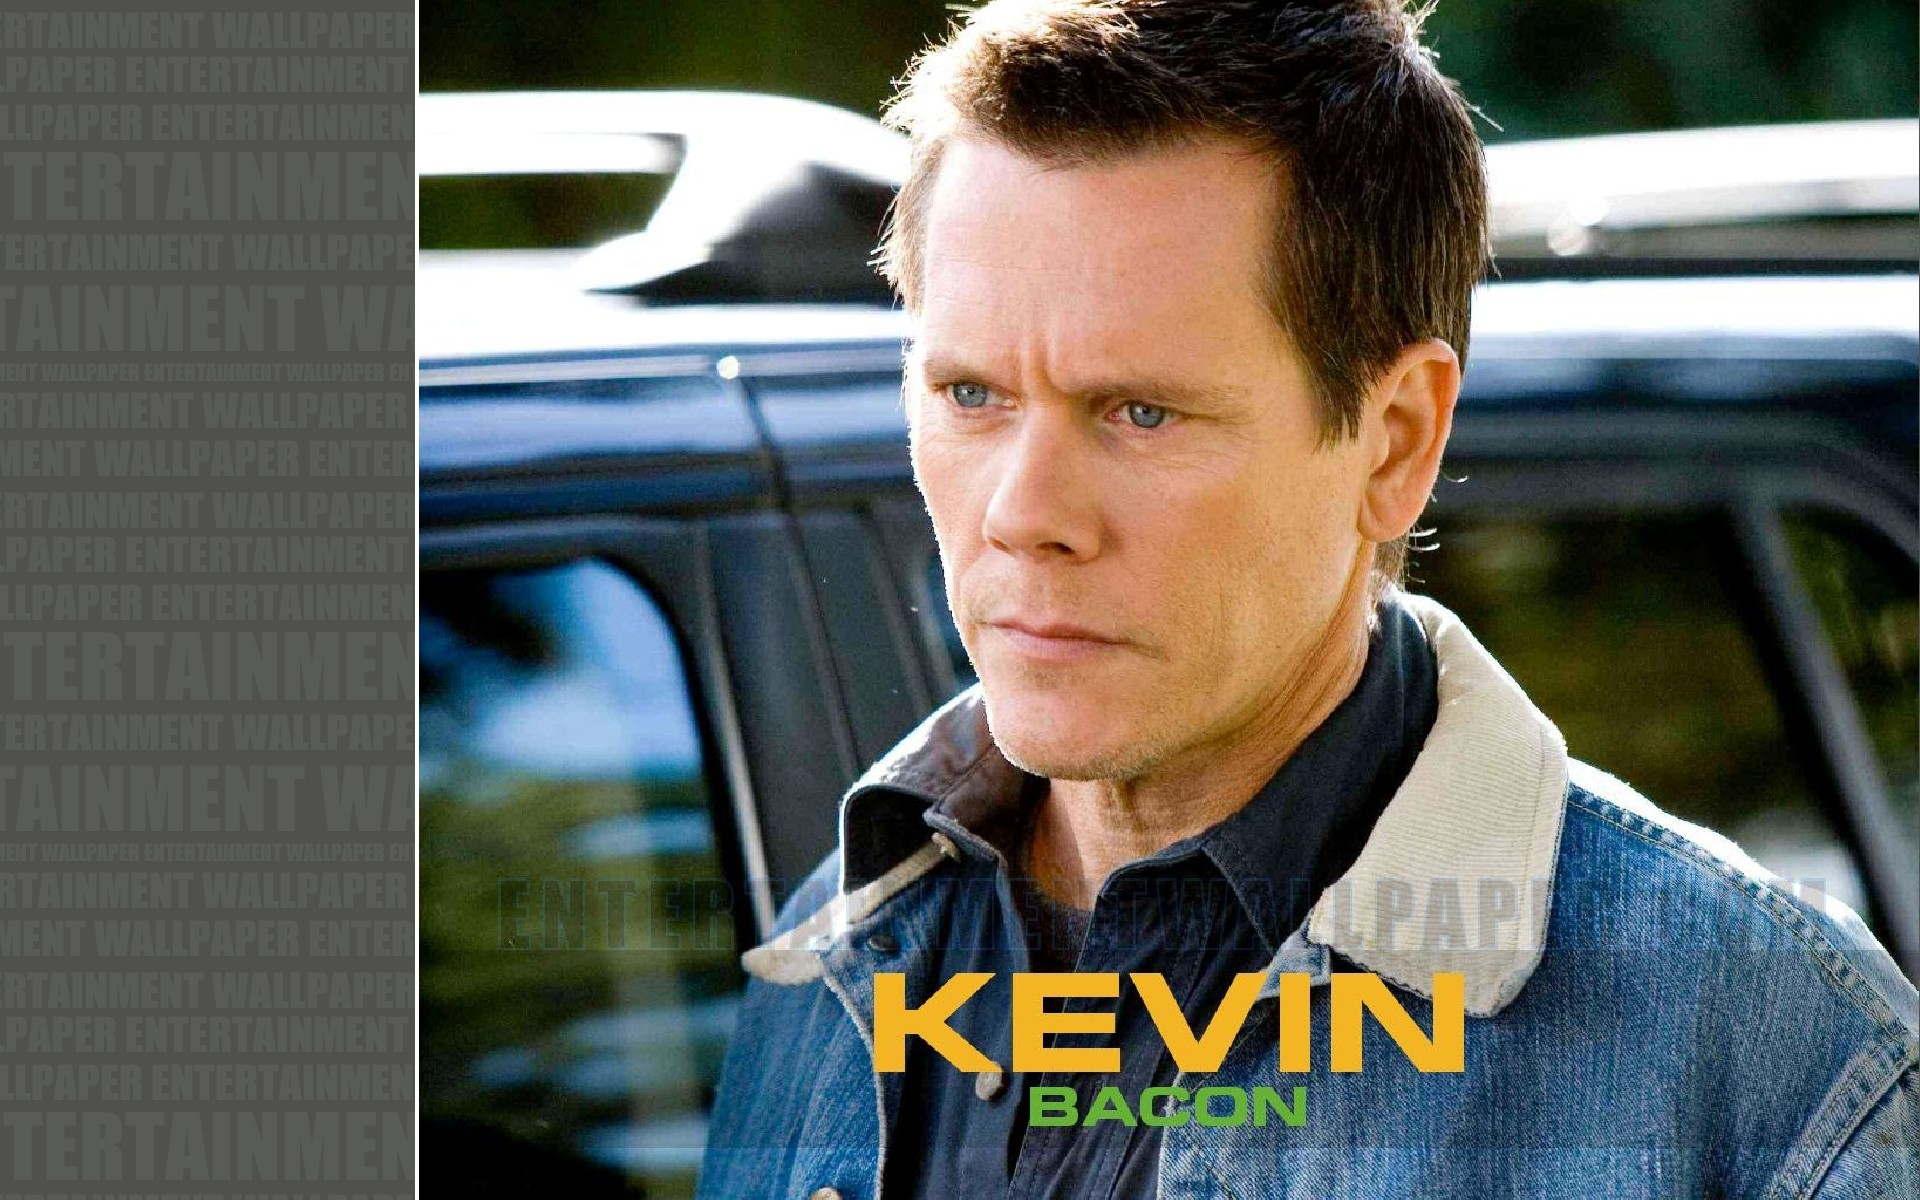 ... kevin bacon wallpaper 30027177 size 1920x1200 more kevin bacon